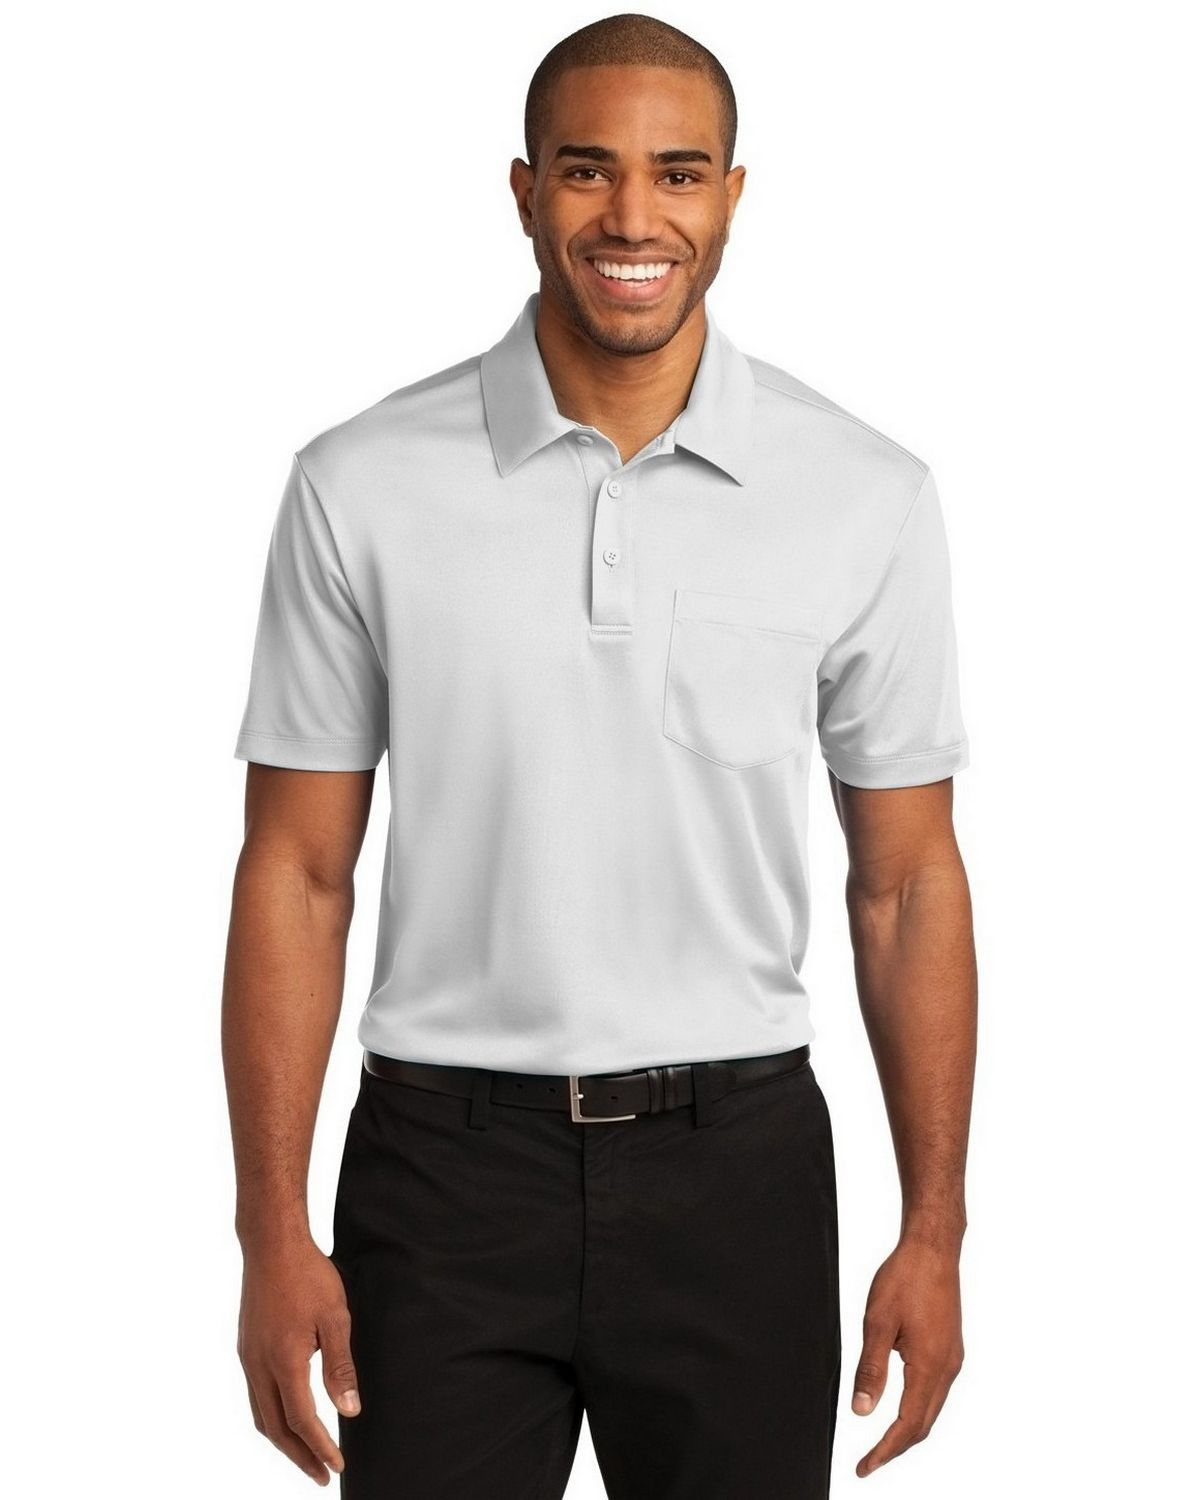 Port Authority K540P Men's Silk Touch Performance Pocket Polo - White - XS #silk